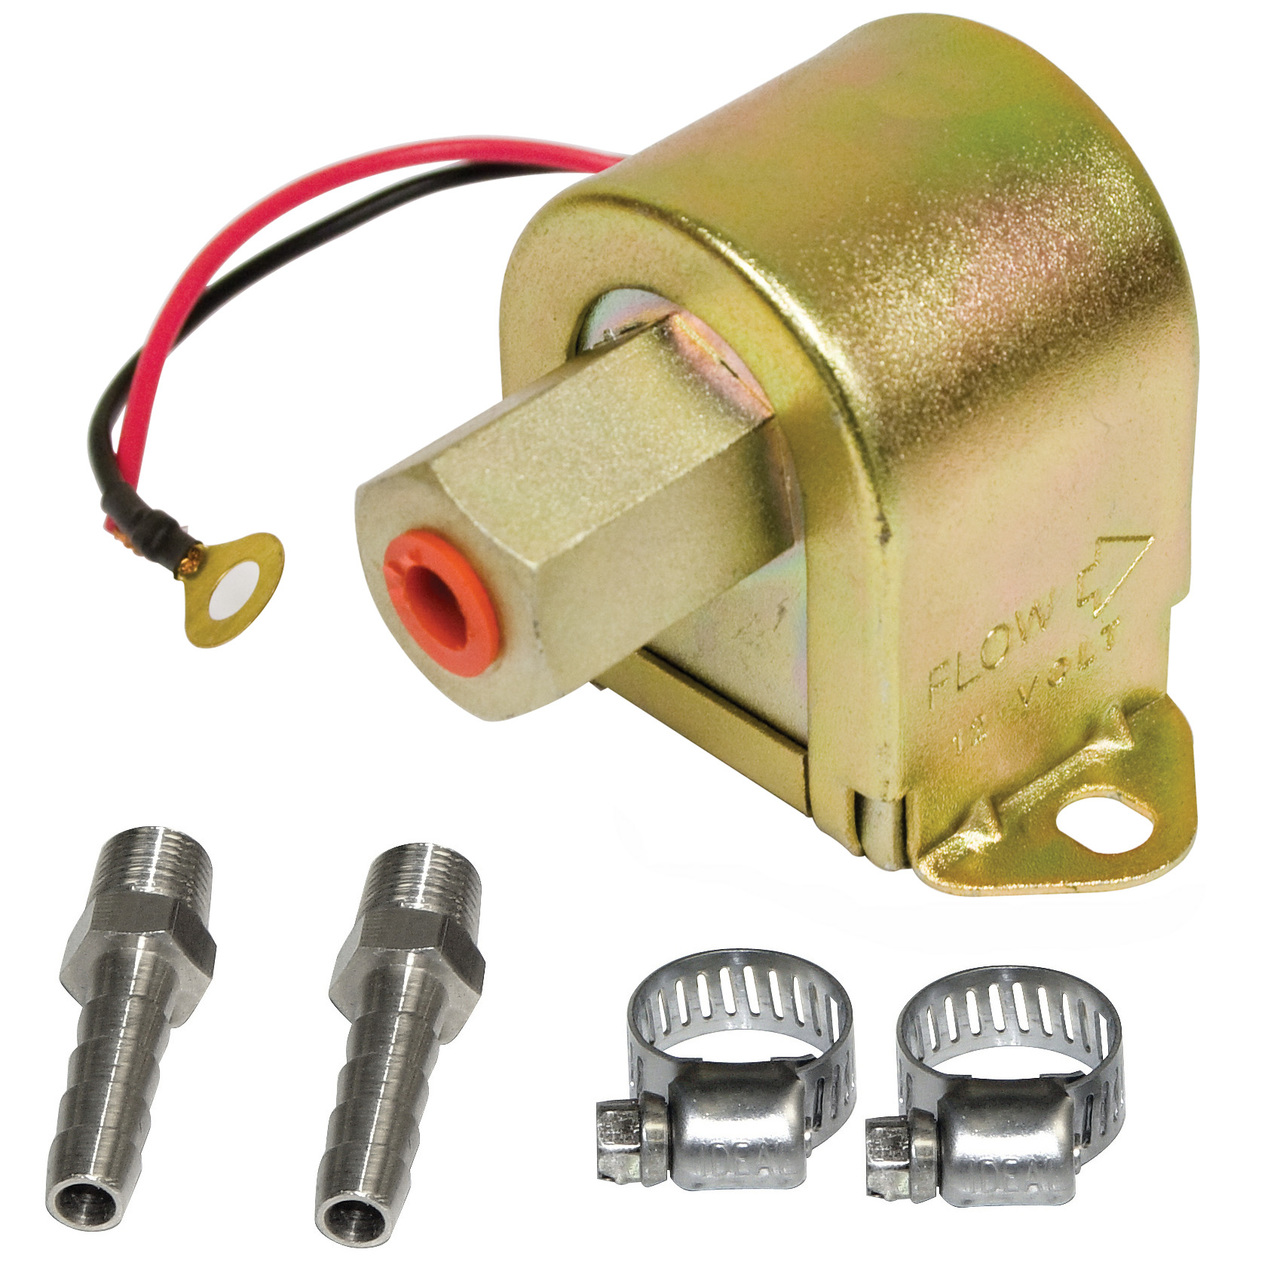 empi 41 2510 8 universal electric fuel pump 1 5 4 psi includes clamps fittings [ 1280 x 1280 Pixel ]